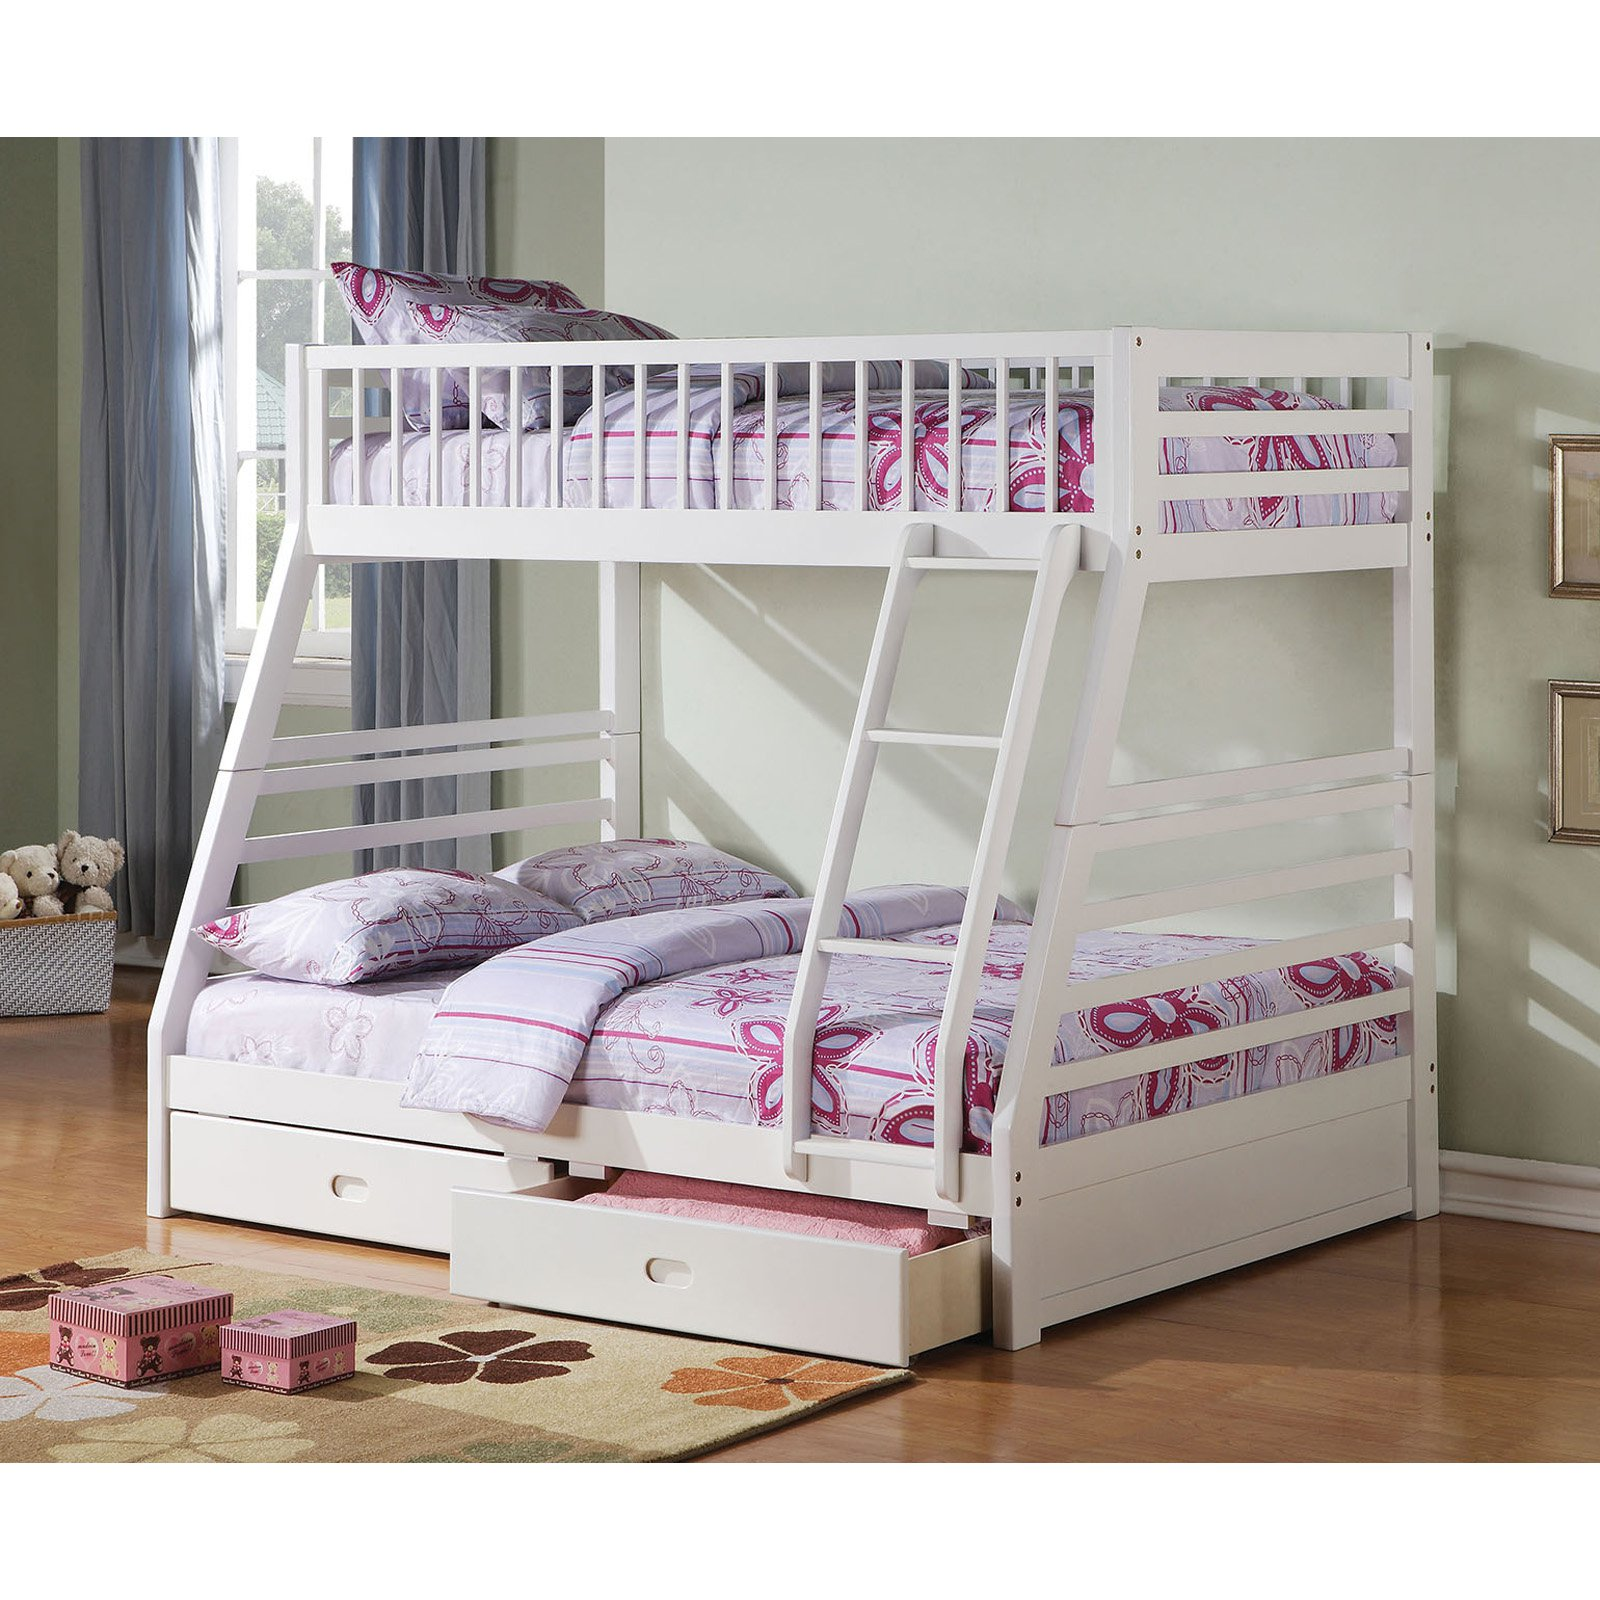 Acme Furniture Jason Twin over Full Bunk Bed with Underbed Drawer